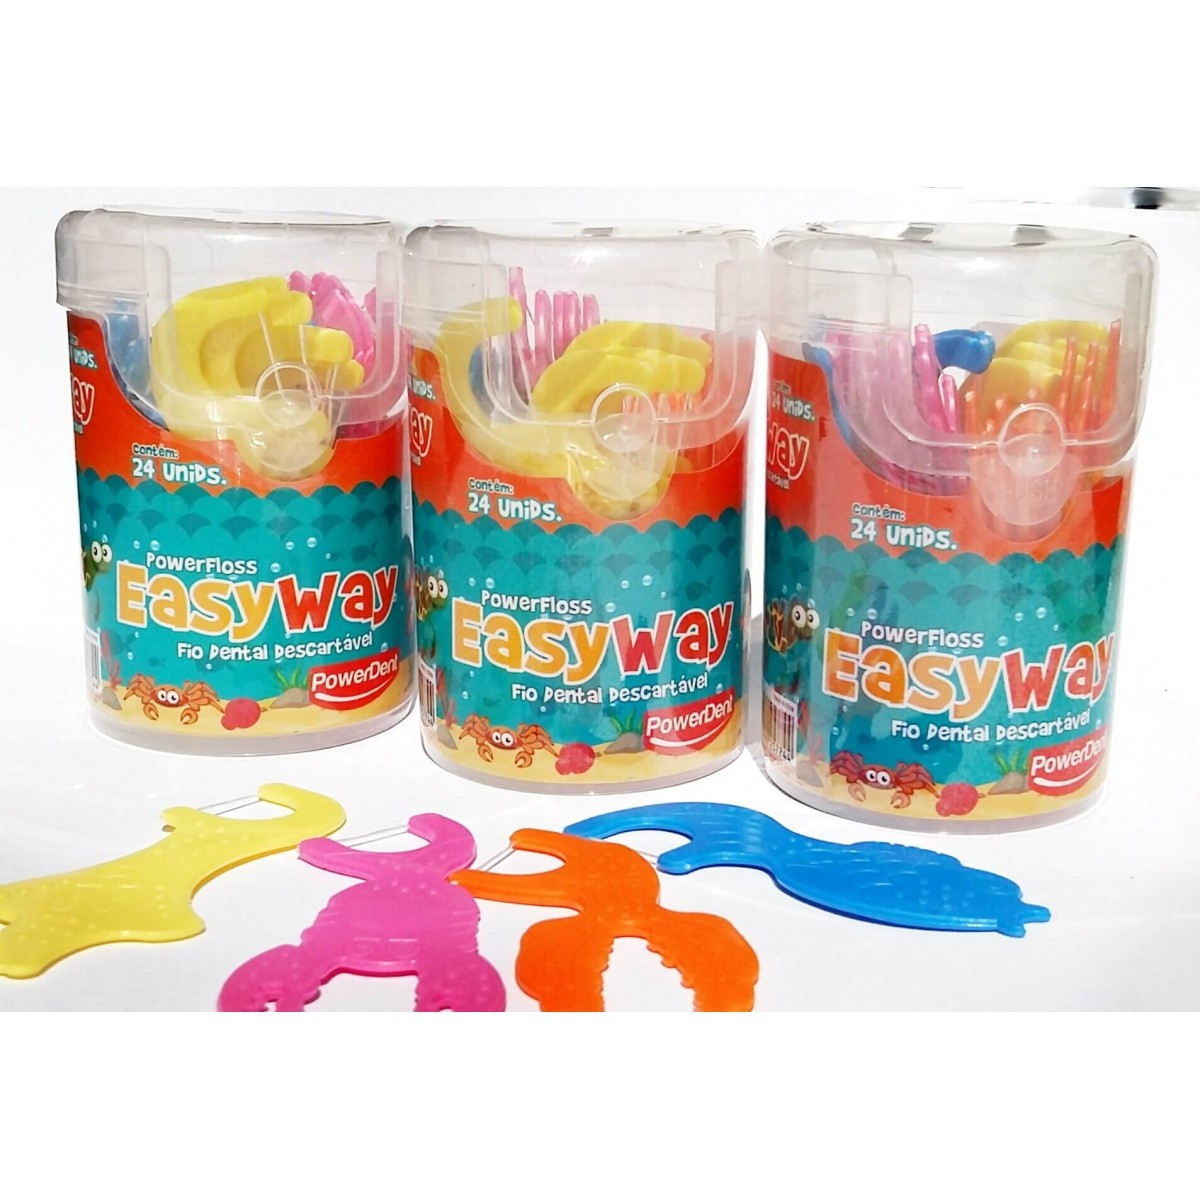 Flosser infantil Easy Way - 72 unidades